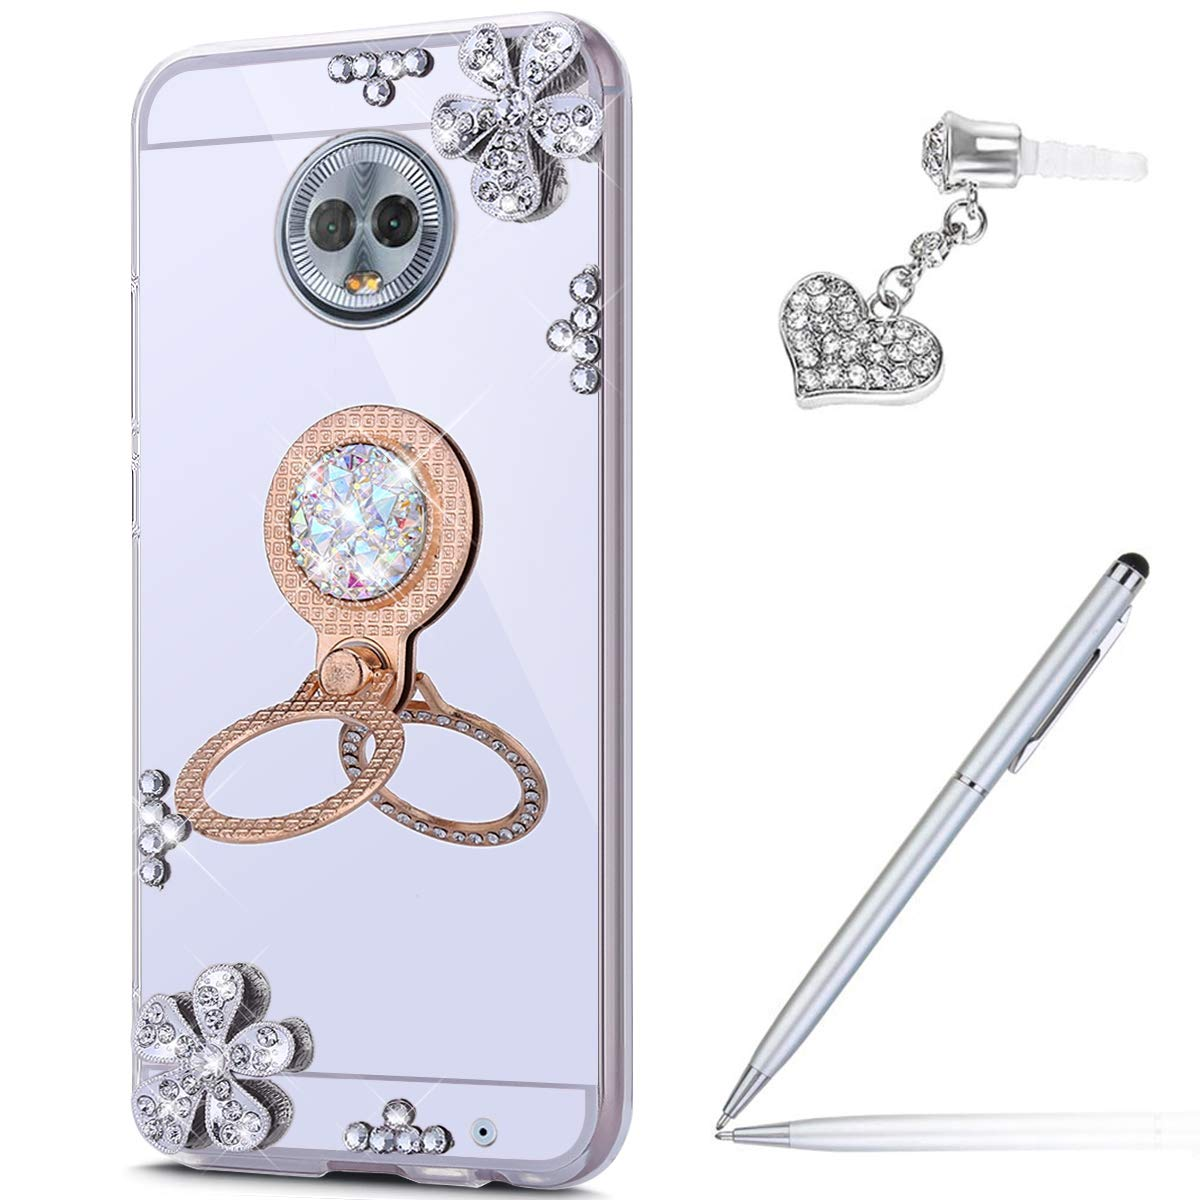 ikasus Case for Moto G6 Plus Diamond Case,Crystal Inlaid diamond Flowers Rhinestone Diamond Glitter Bling Mirror Back TPU Case & Ring Stand + Touch Pen Dust Plug for Moto G6 Plus Mirror Case,Silver by ikasus